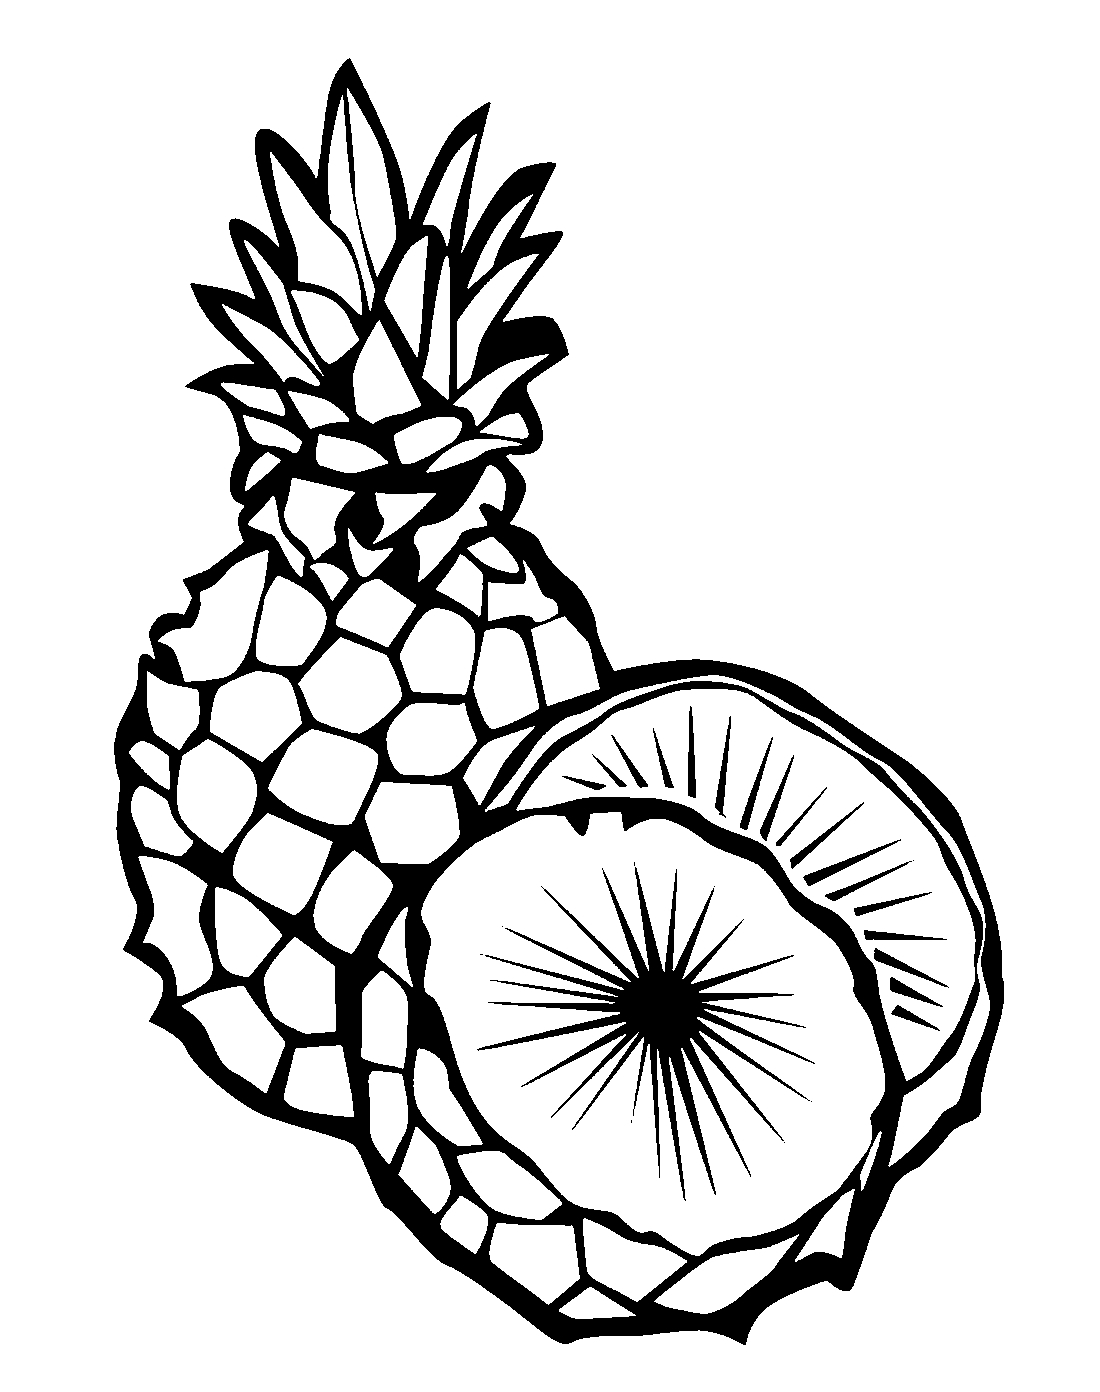 pineapple coloring sheet pineapple coloring pages to download and print for free sheet pineapple coloring